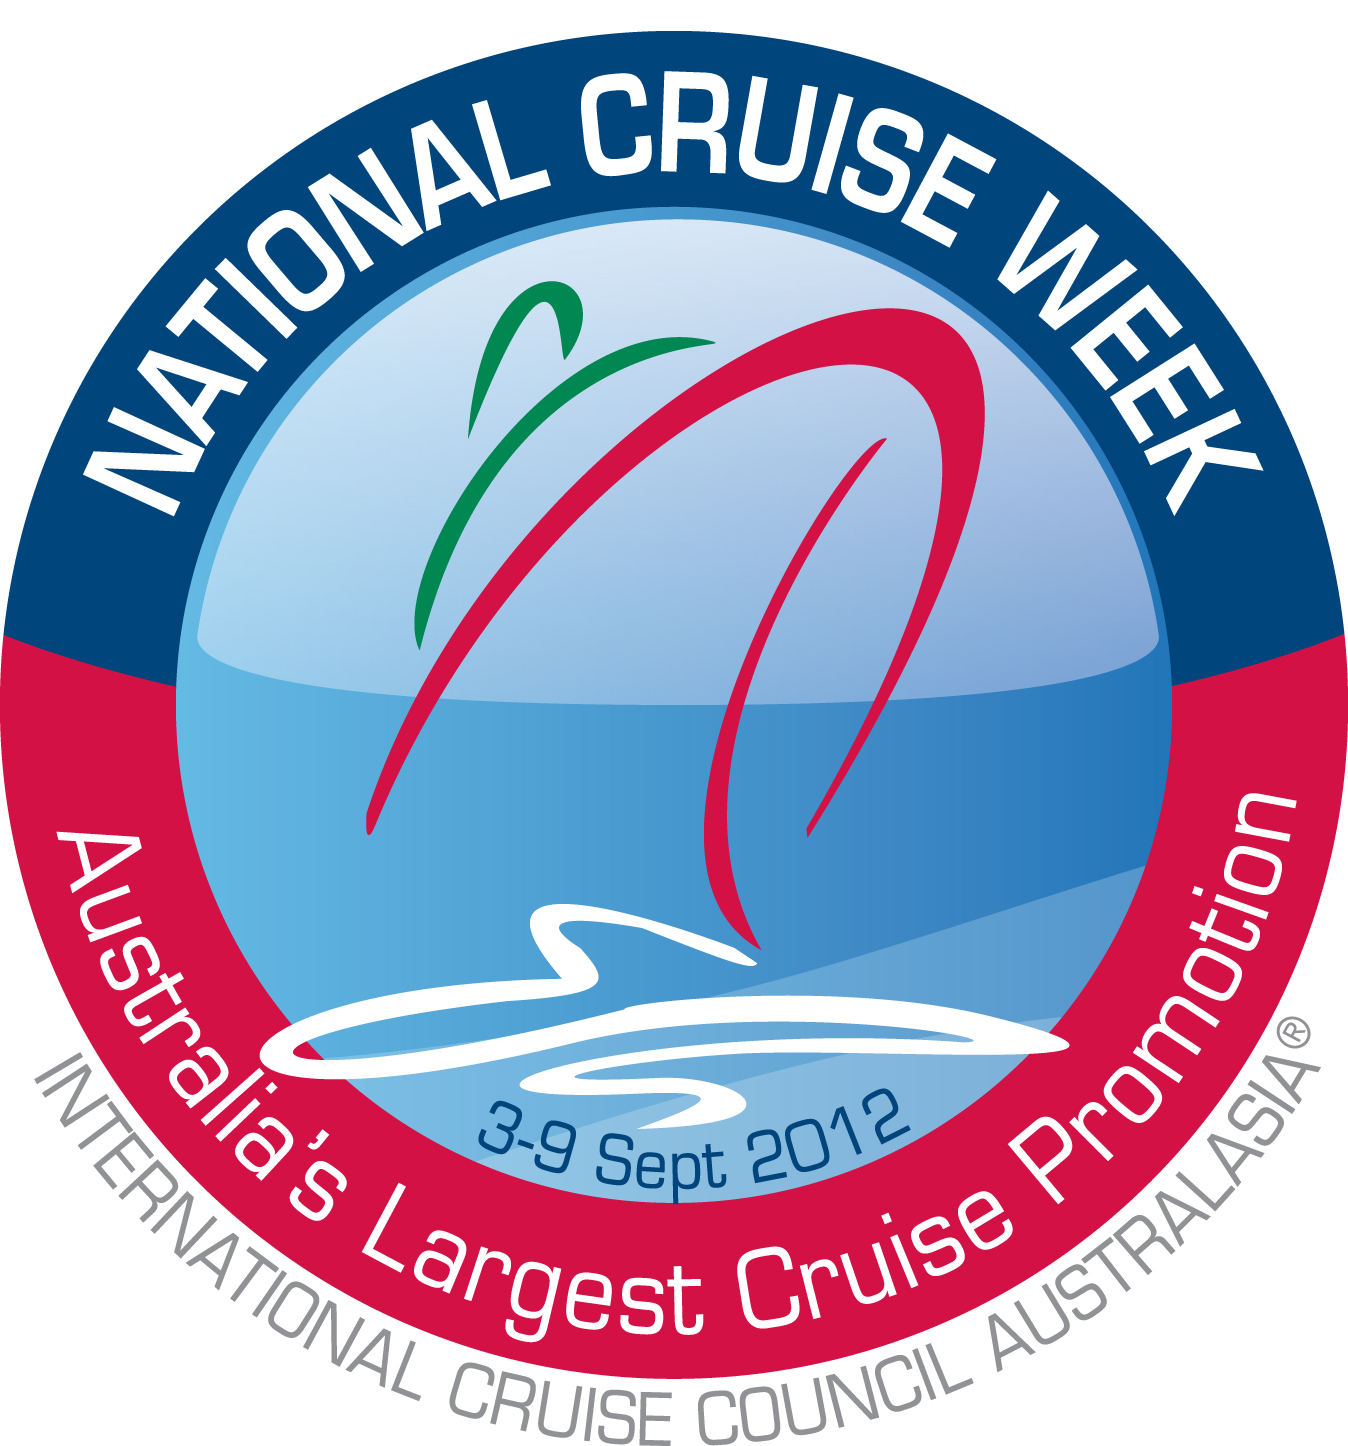 05156 Cruise Council logo v9 aus flt.jpg